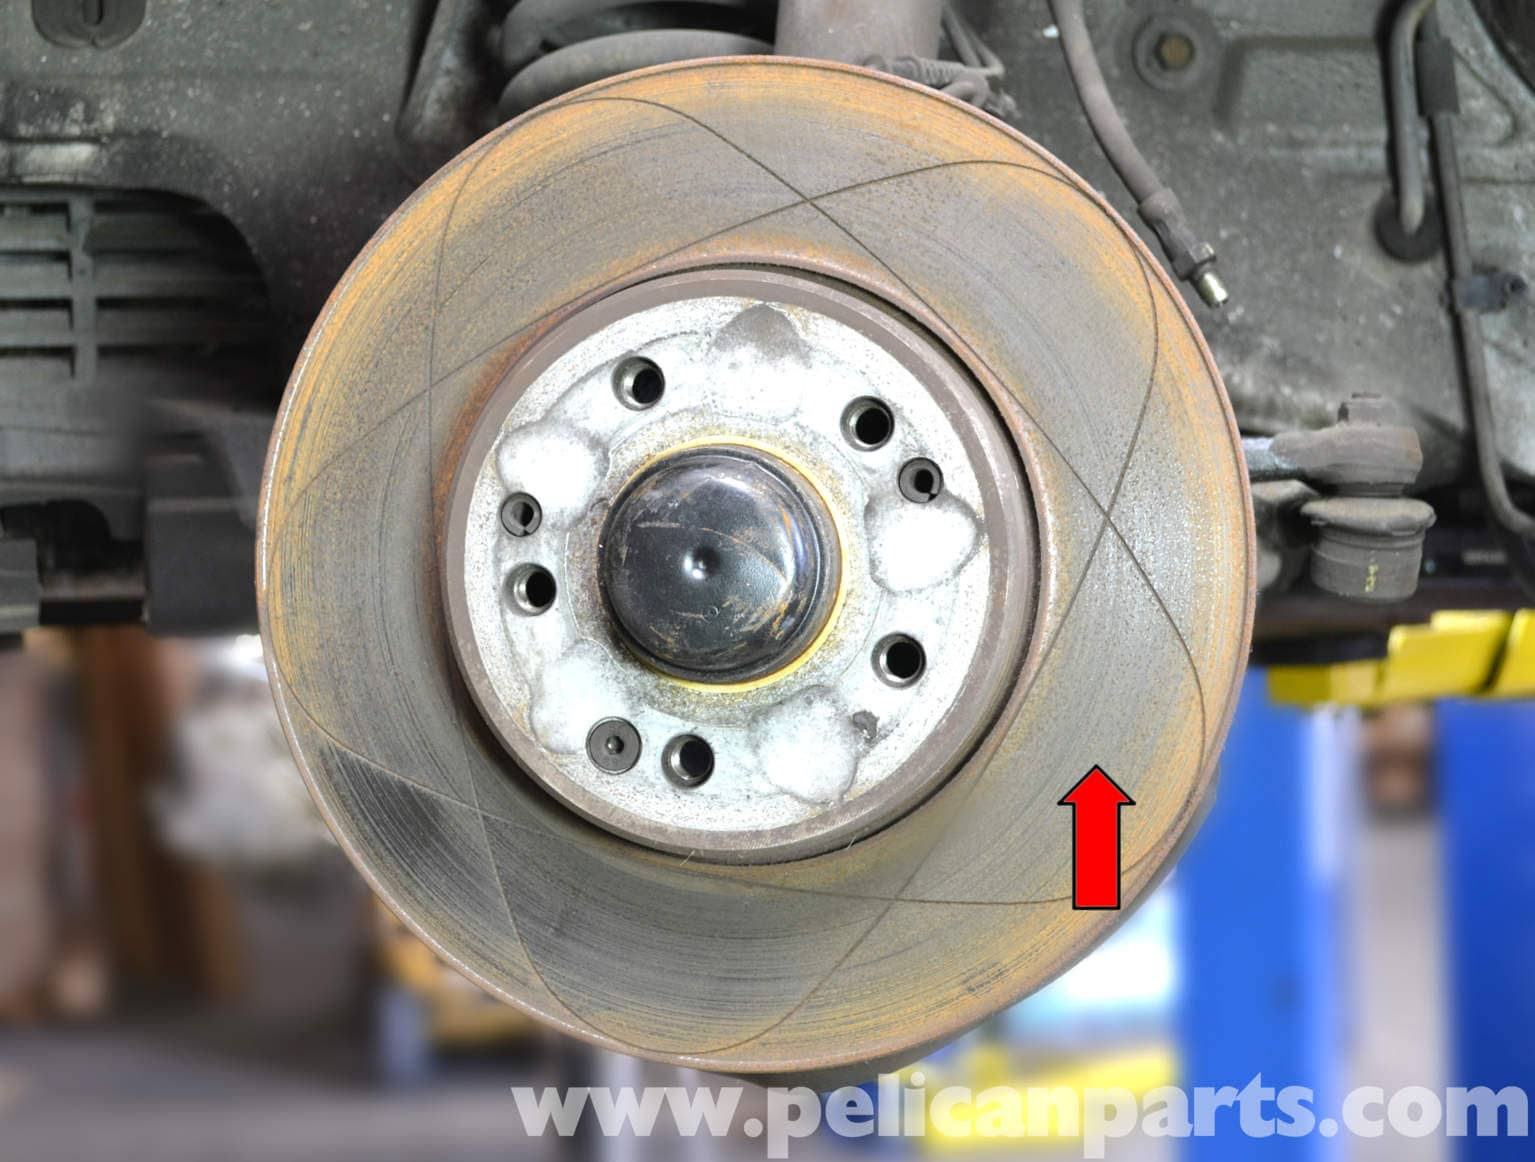 Mercedes benz w124 front brake rotor replacement 1986 for Mercedes benz rotors replacement